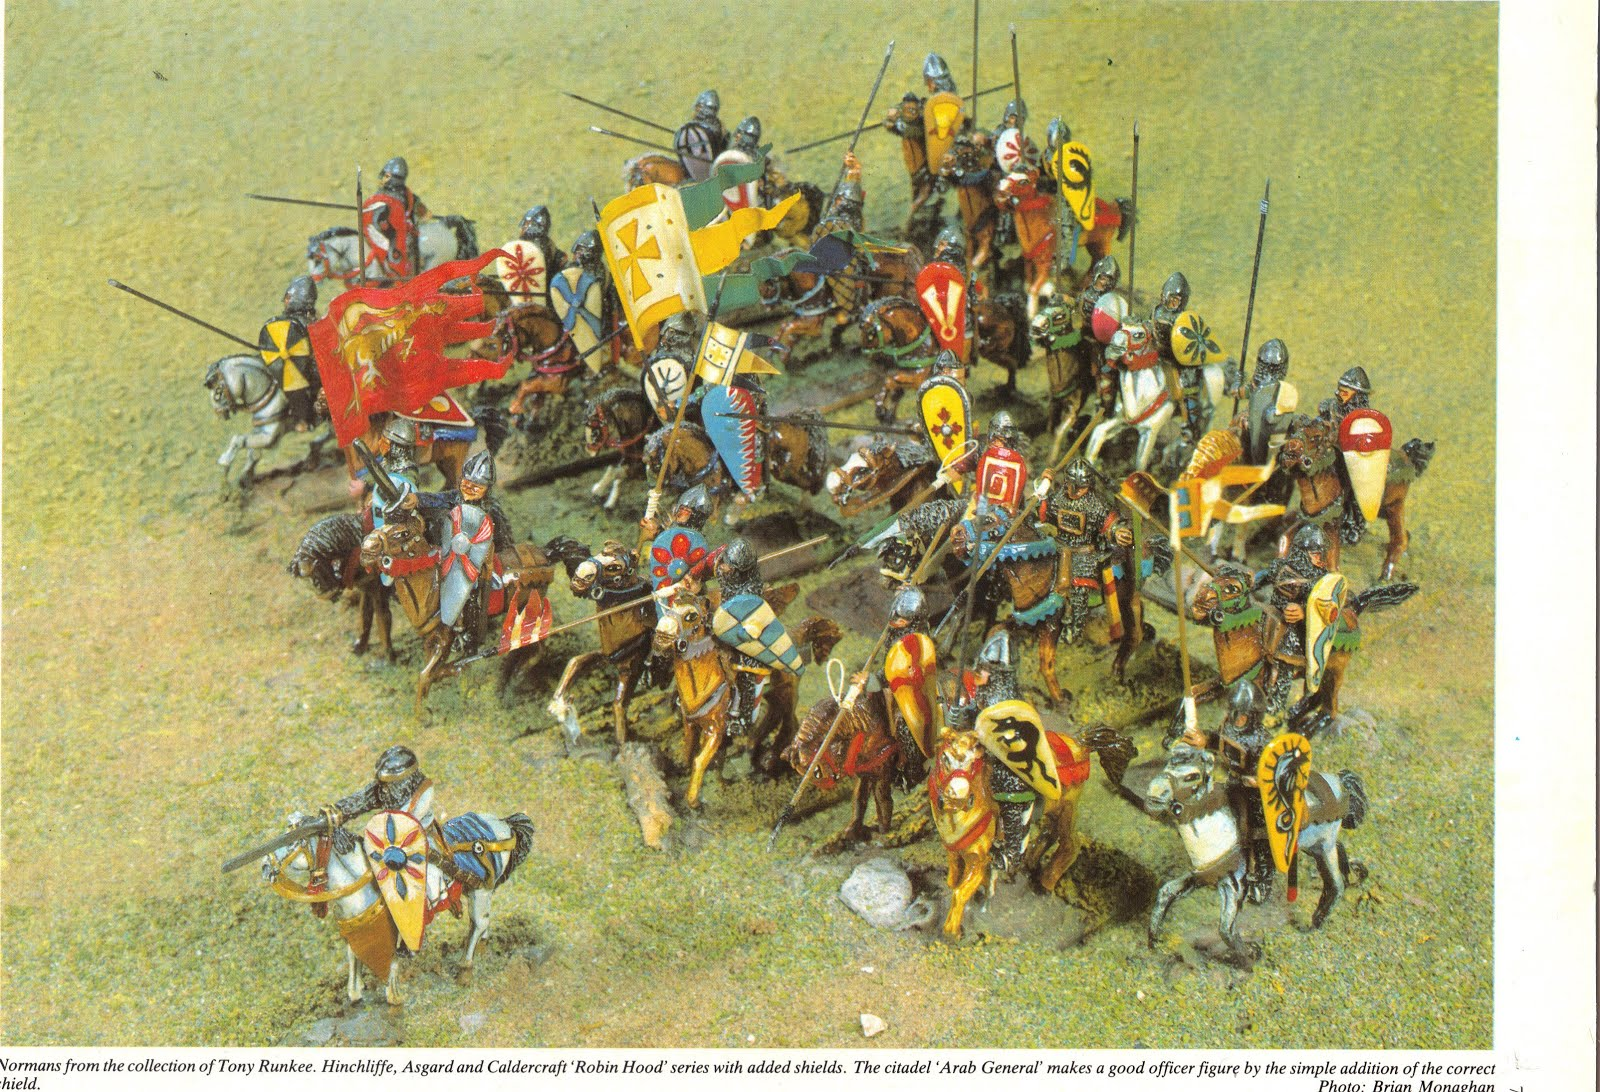 Norman Heavy Cavalry